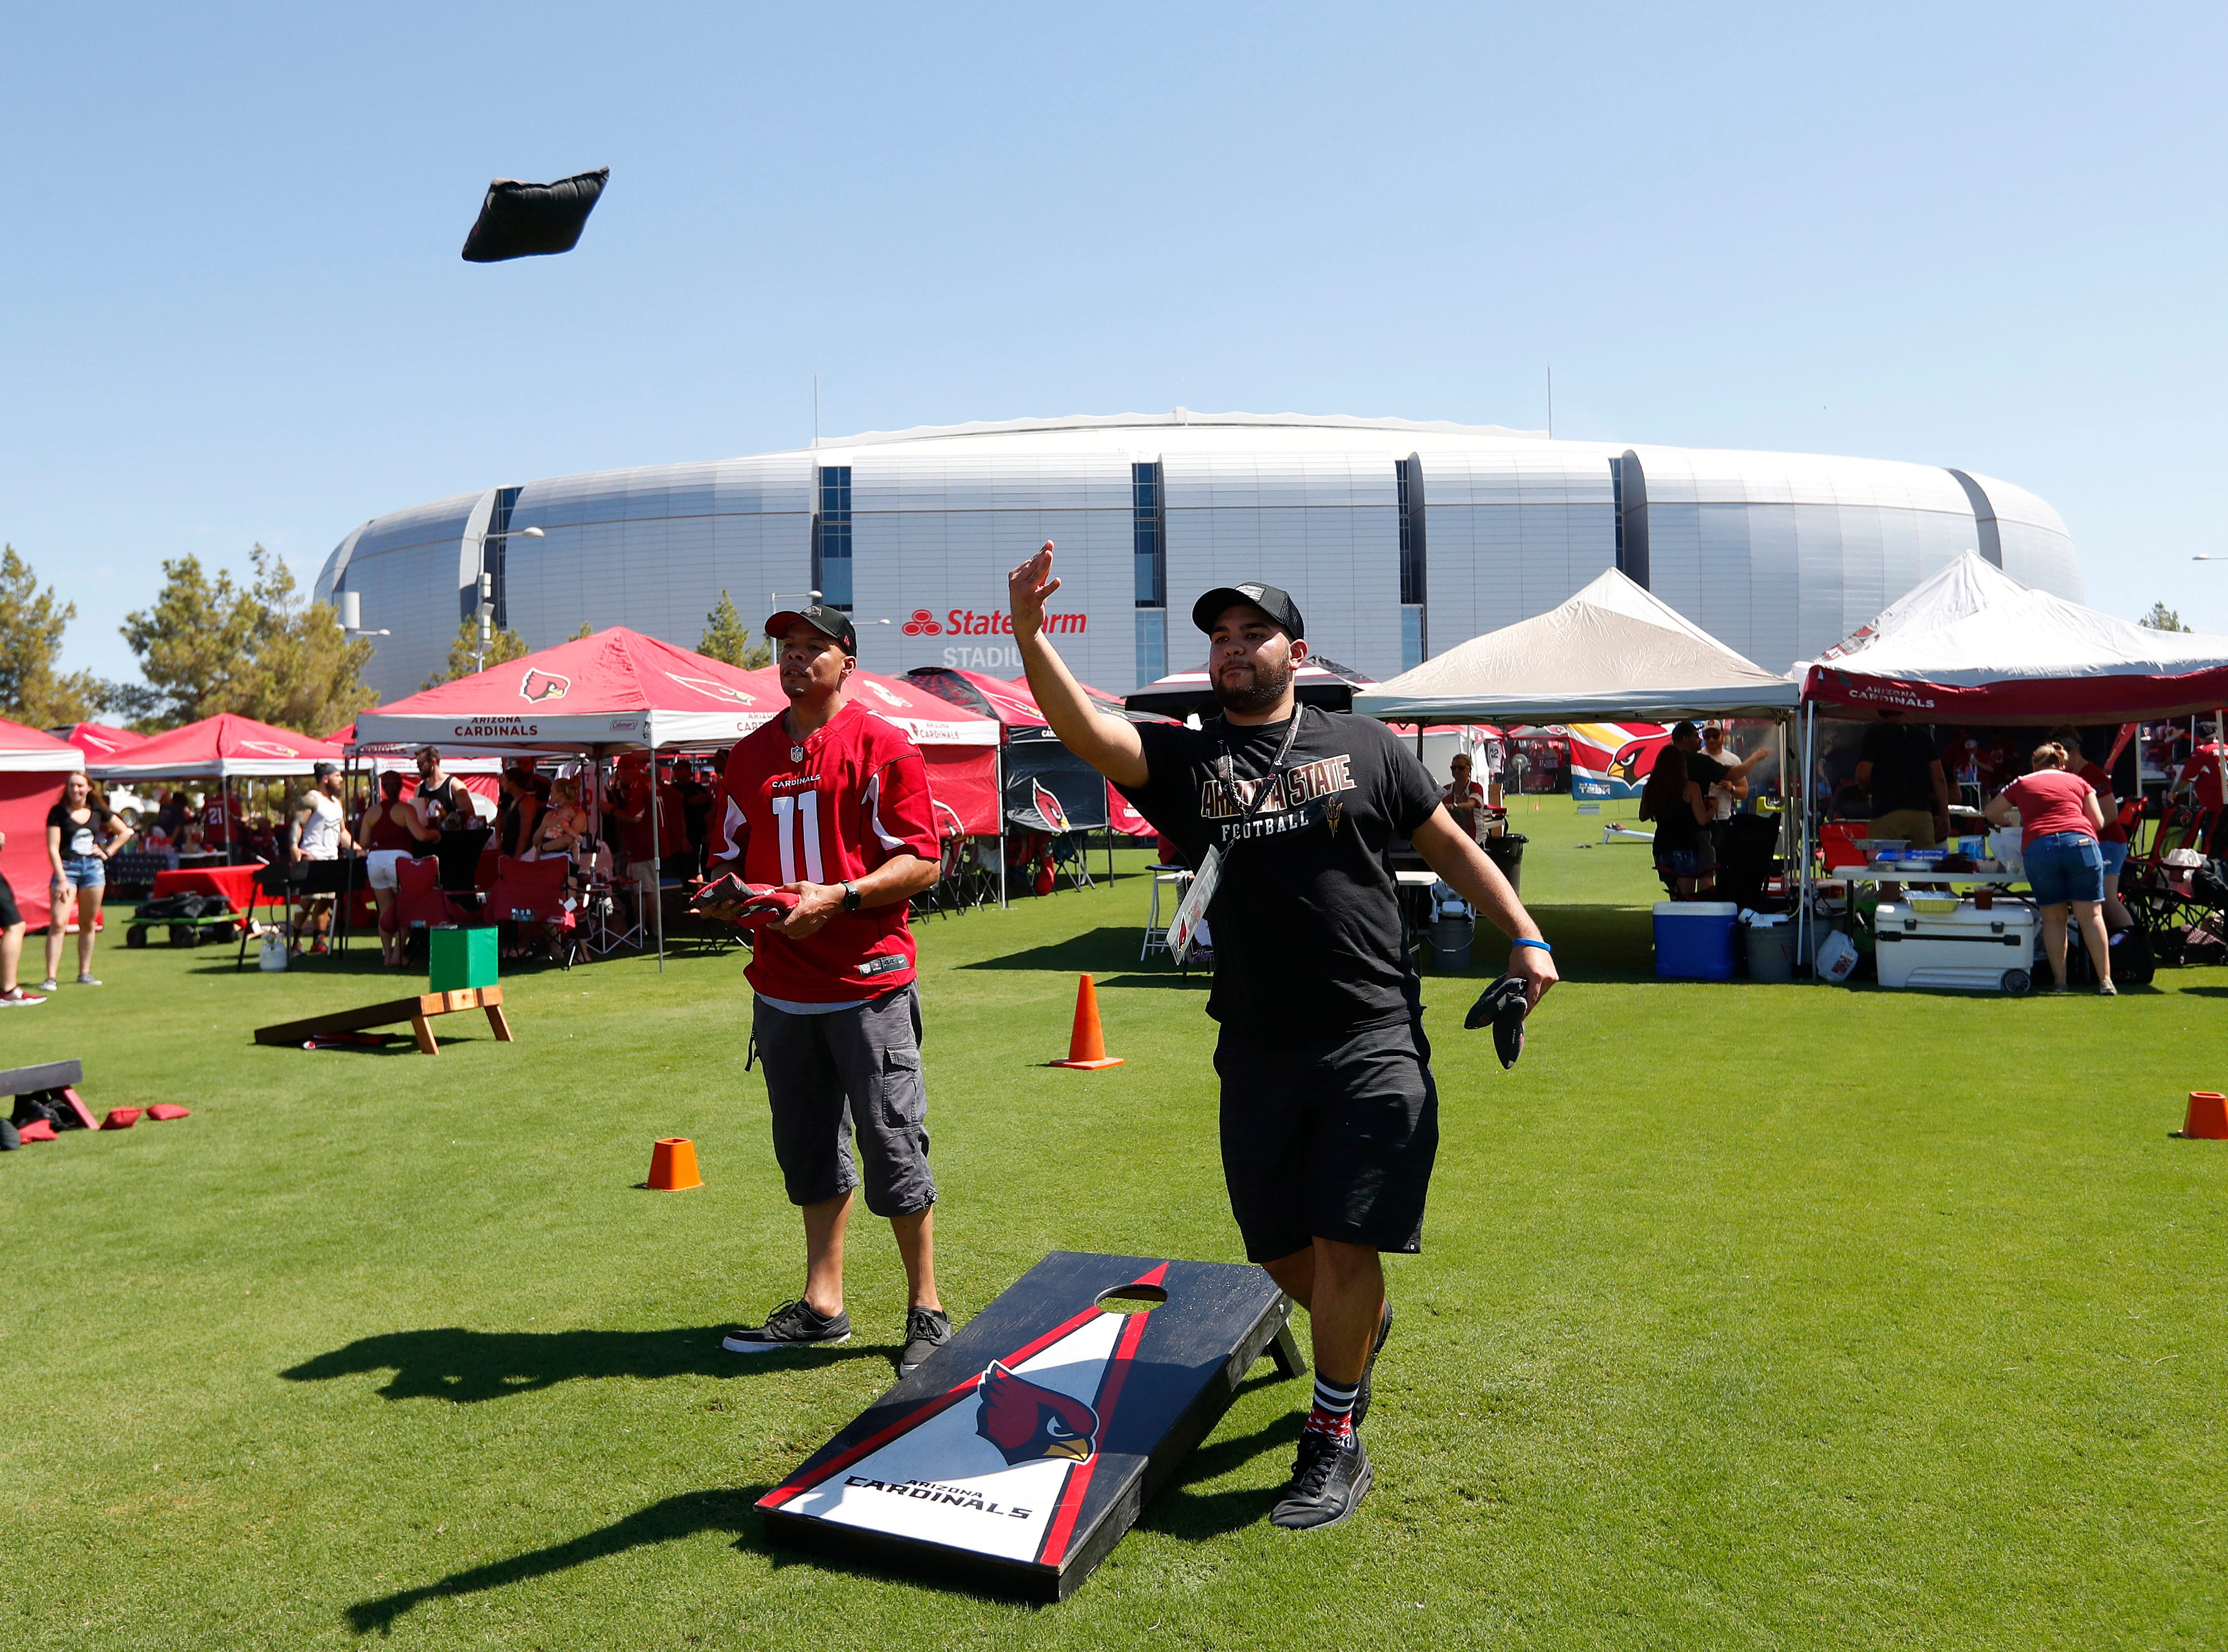 Arizona Cardinals fans Edgar Balenzuela and Michael Clayton, right, toss beanbags priot to an NFL football game against the Washington Redskins, Sunday, Sept. 9, 2018, in Glendale, Ariz.